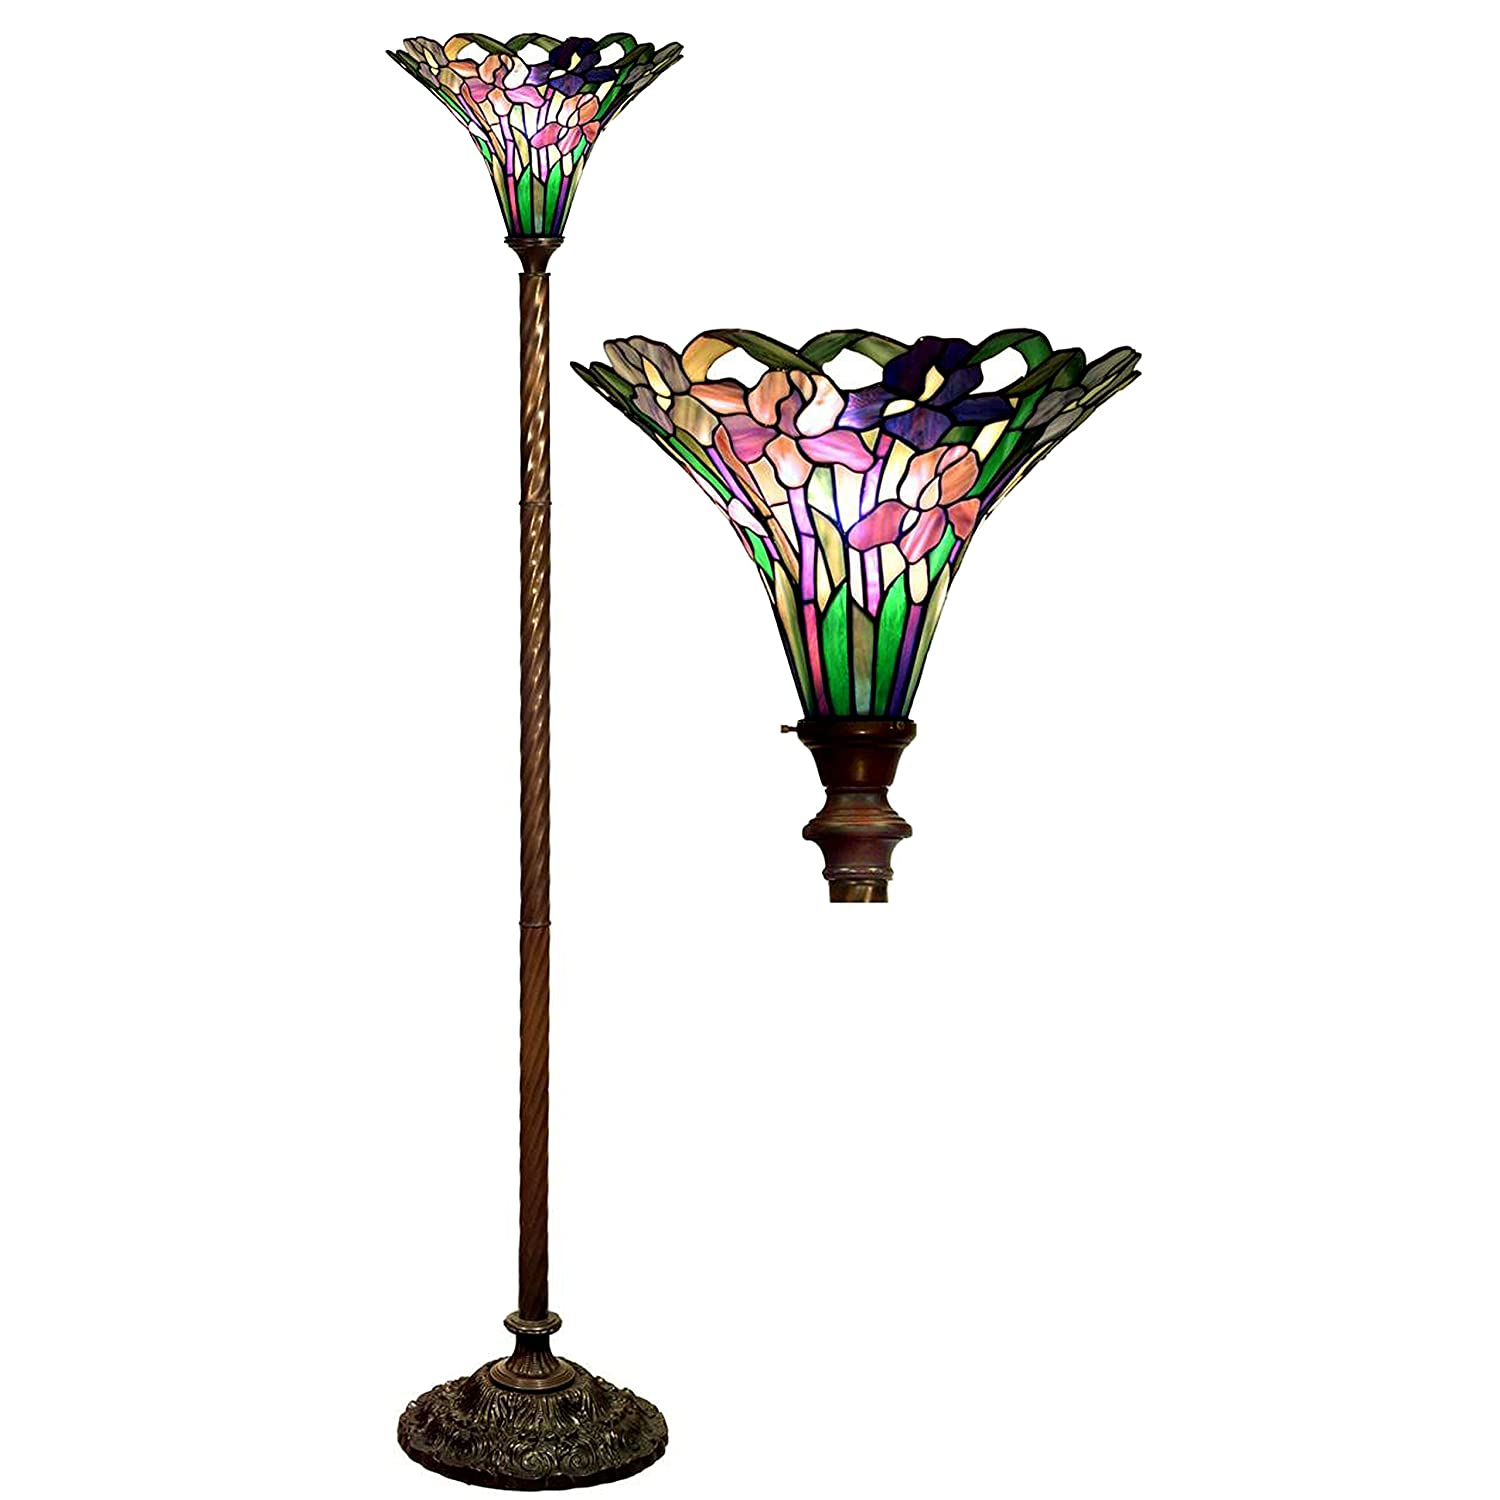 Tiffany-style Iris Torchiere - stained glass lamps